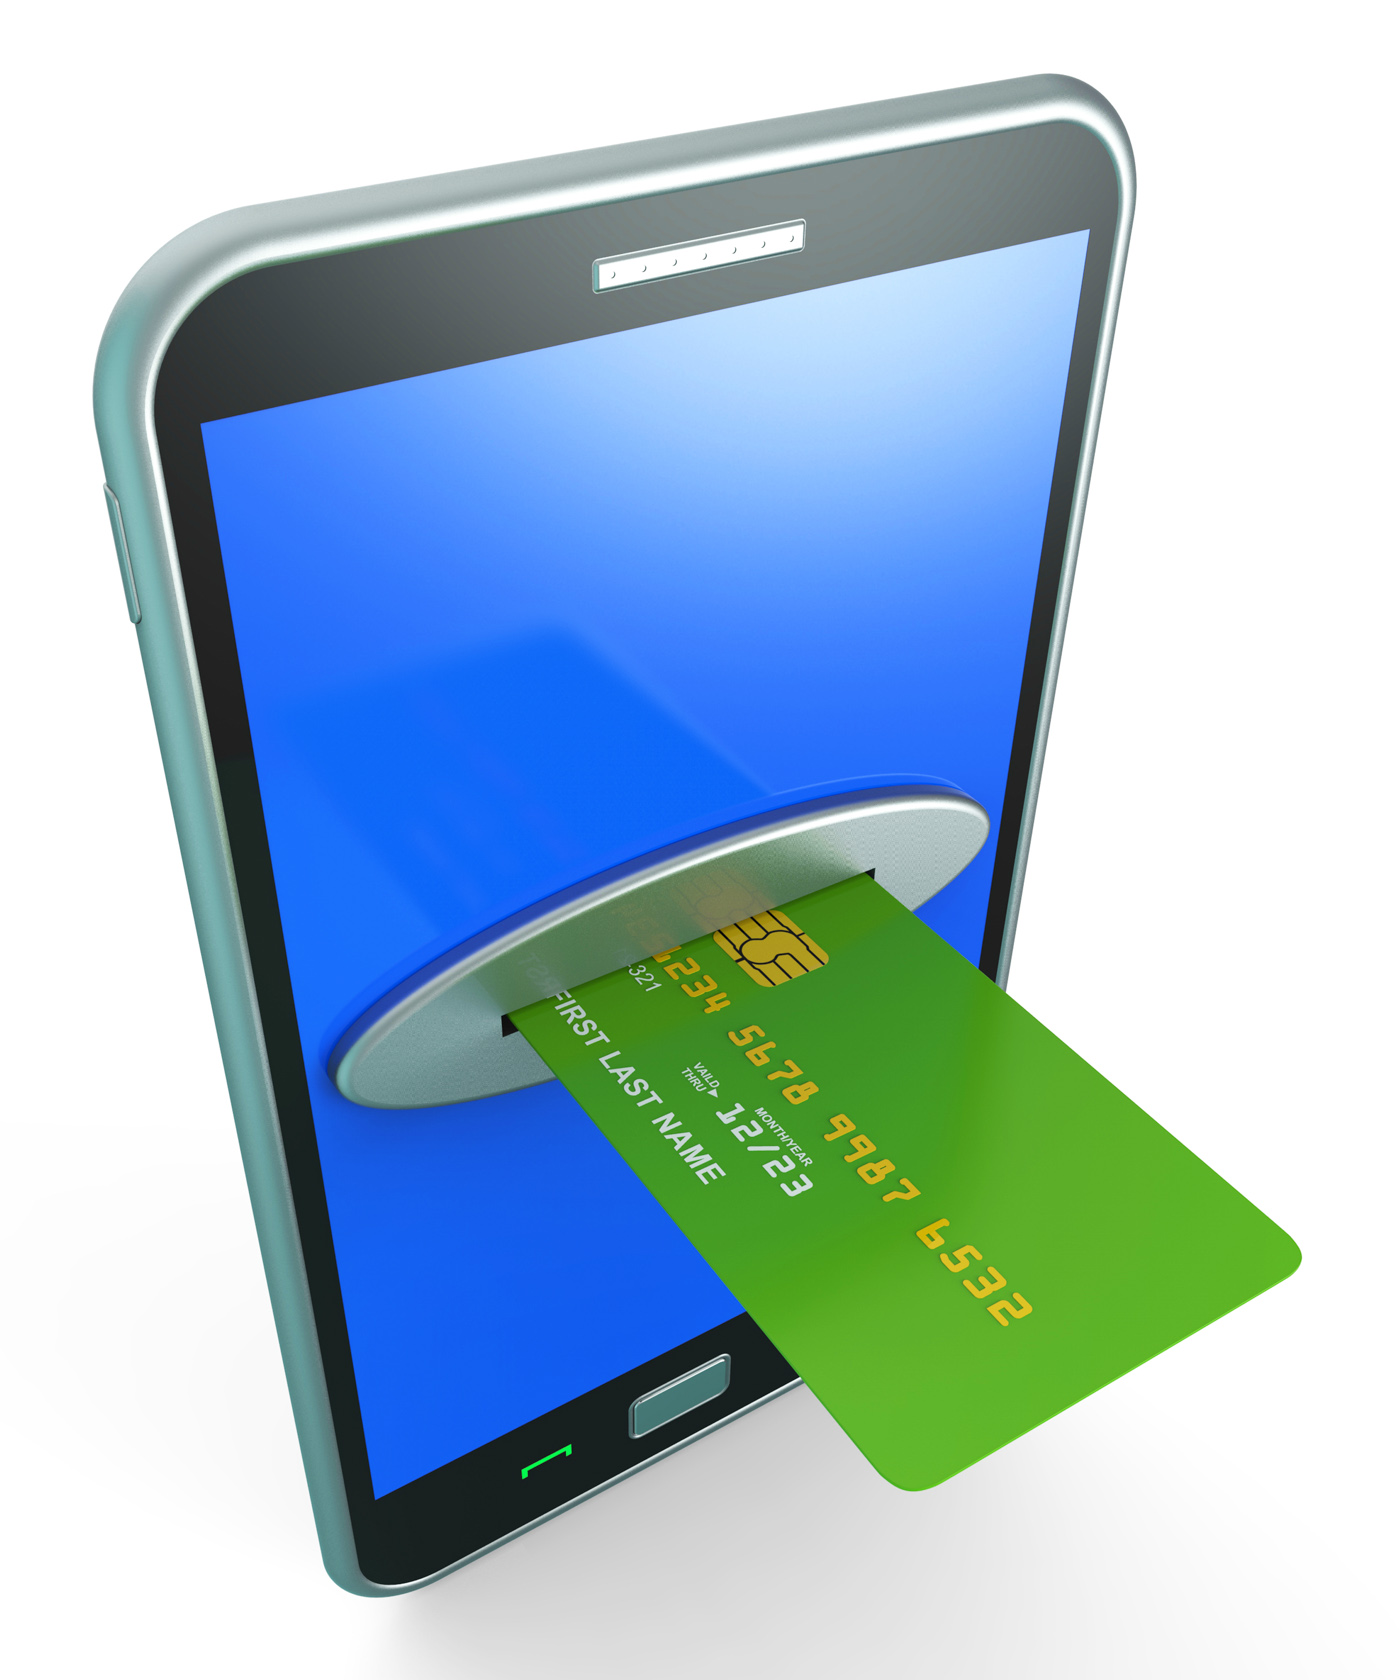 Credit Card Online Shows Retail Sales And Web, Purchasing, Network, Online, Paying, HQ Photo